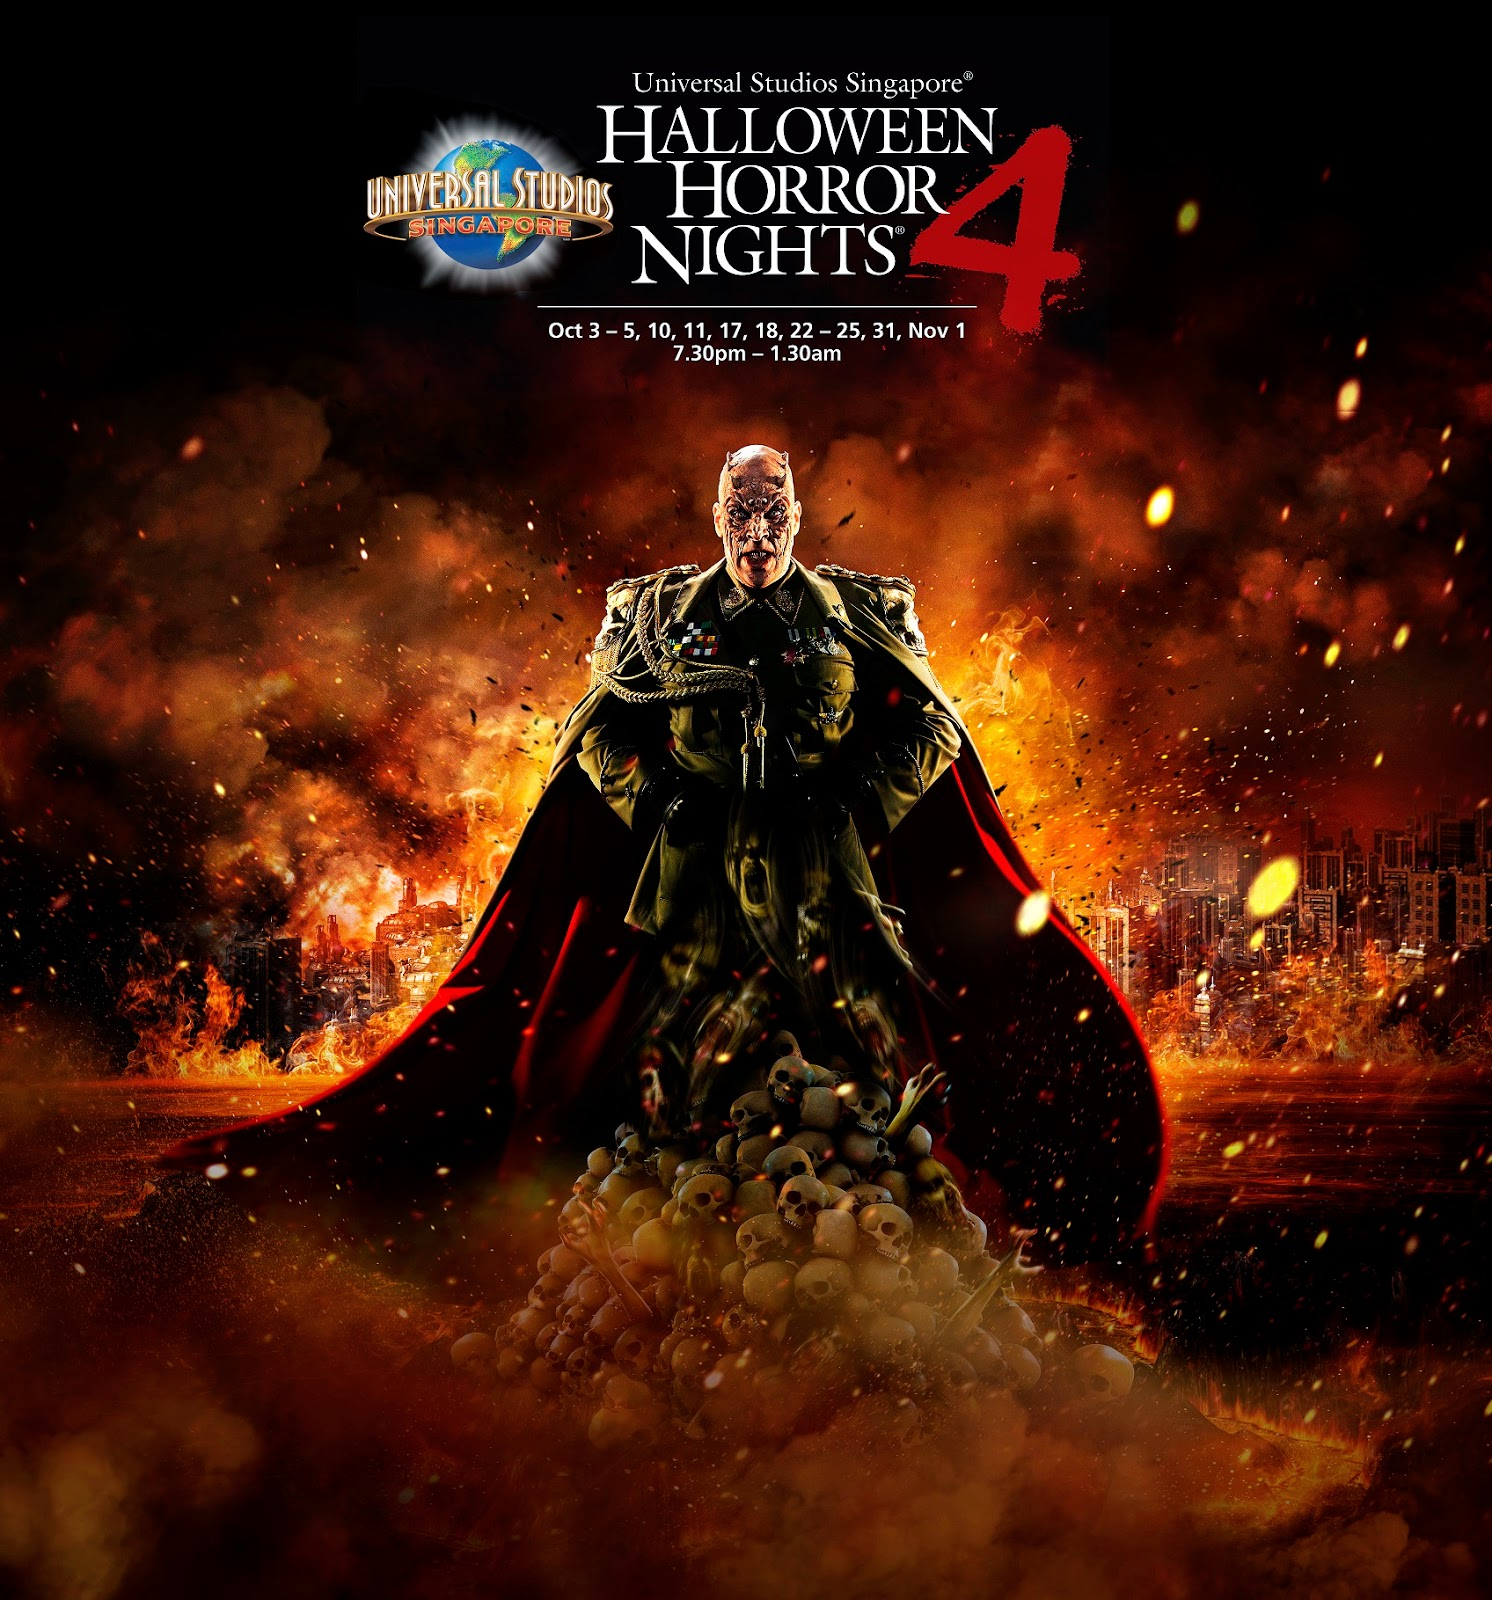 USS Horror Nights 2014 Preview